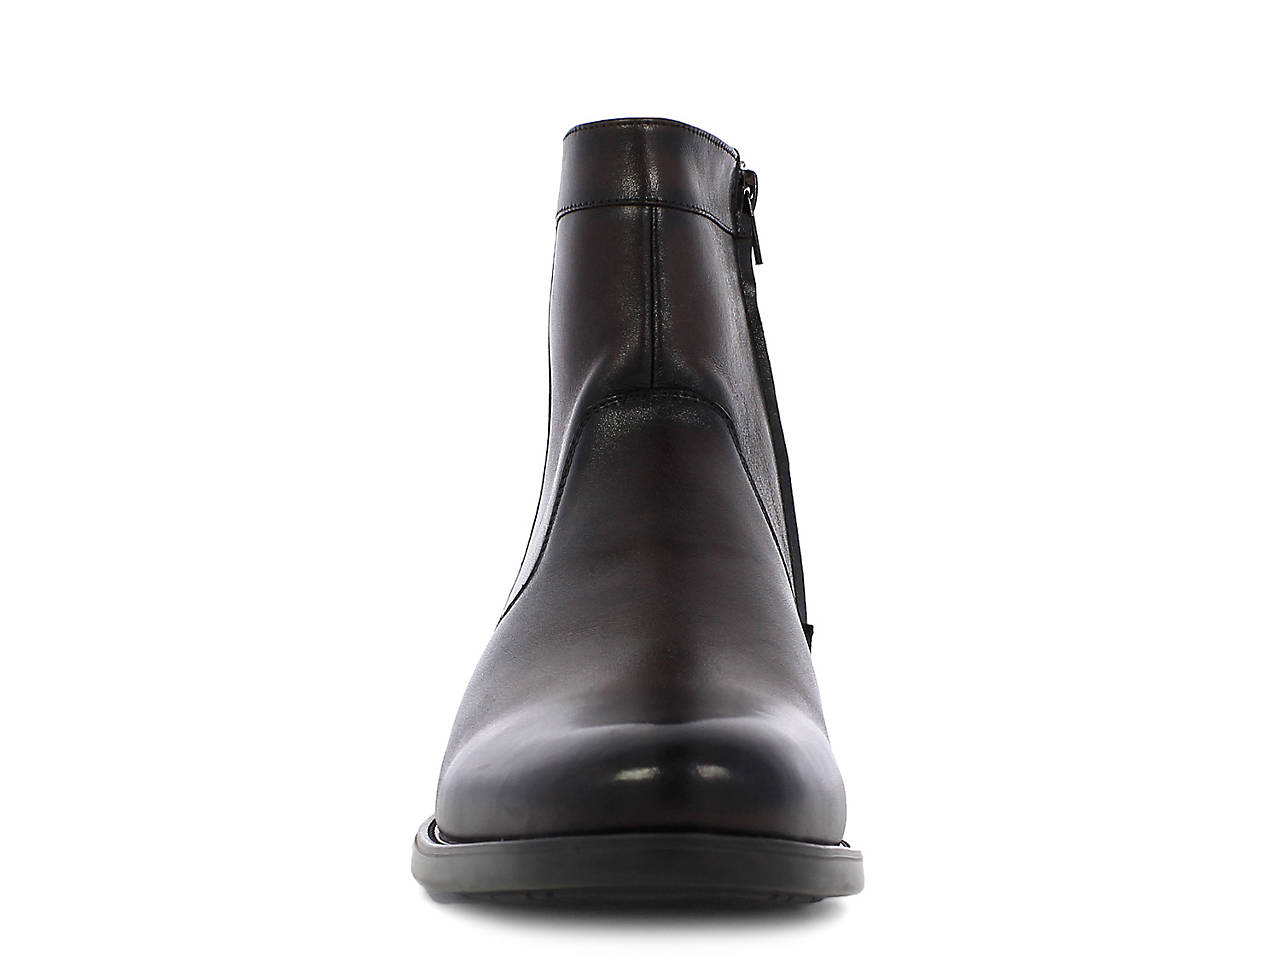 030f0fbbe32 Midtown Boot